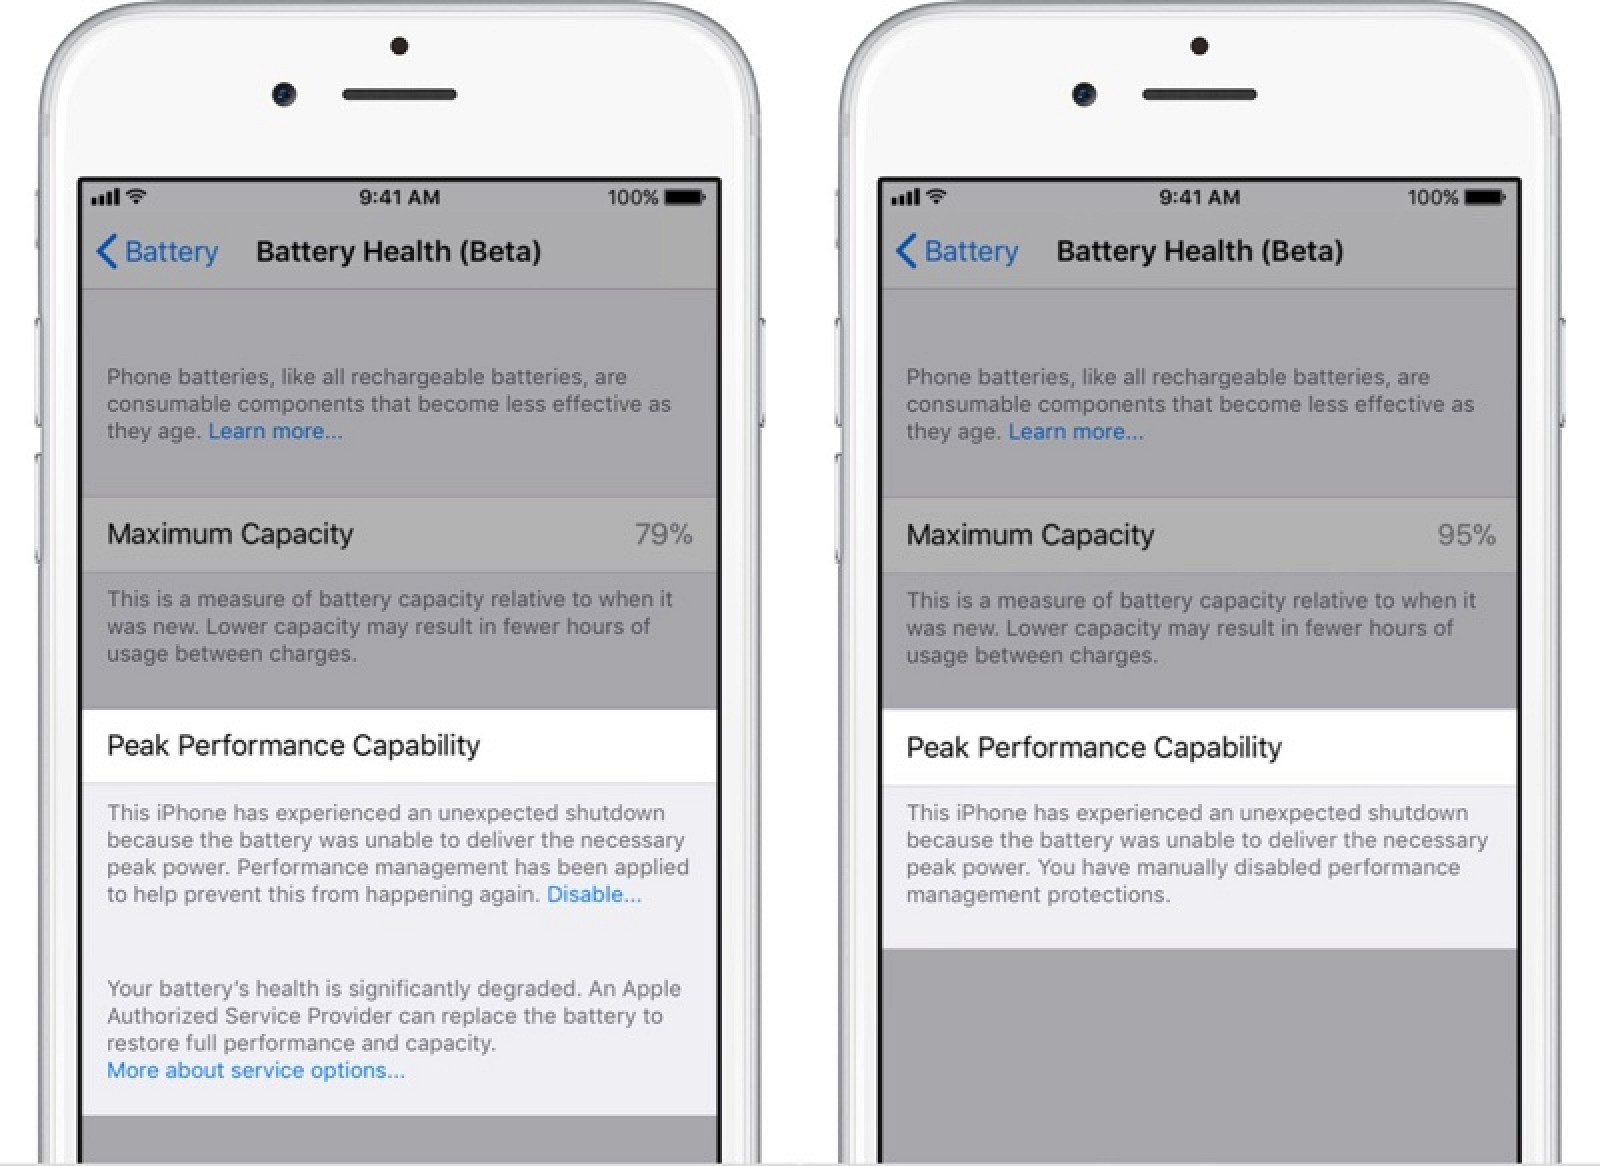 How to Disable Apple's Performance Management Features in